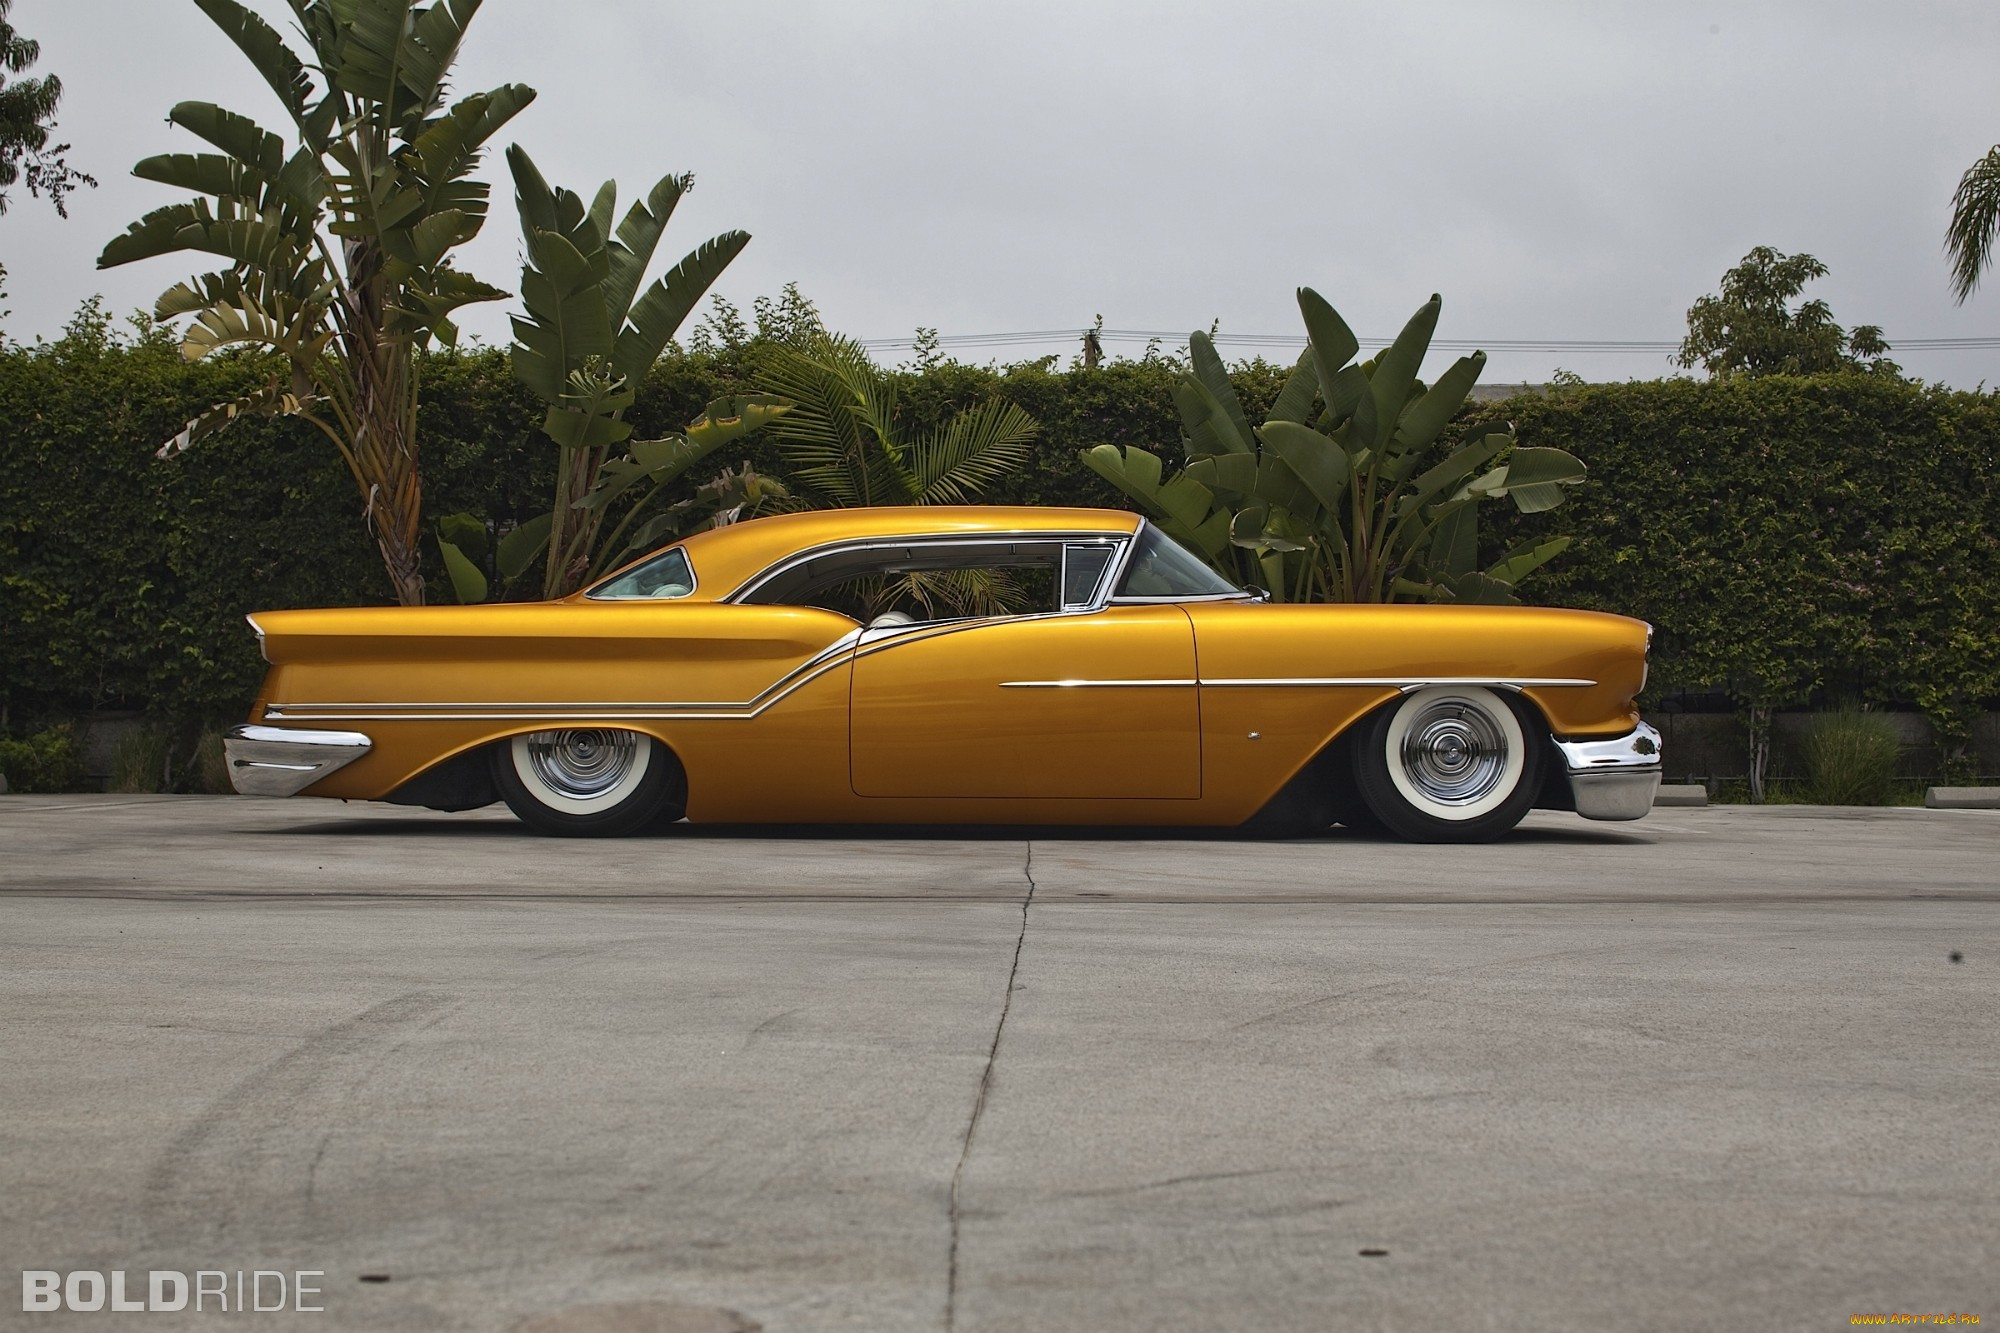 1957 Oldsmobile Custom lowrider classic cars wallpaper 2000x1333 2000x1333